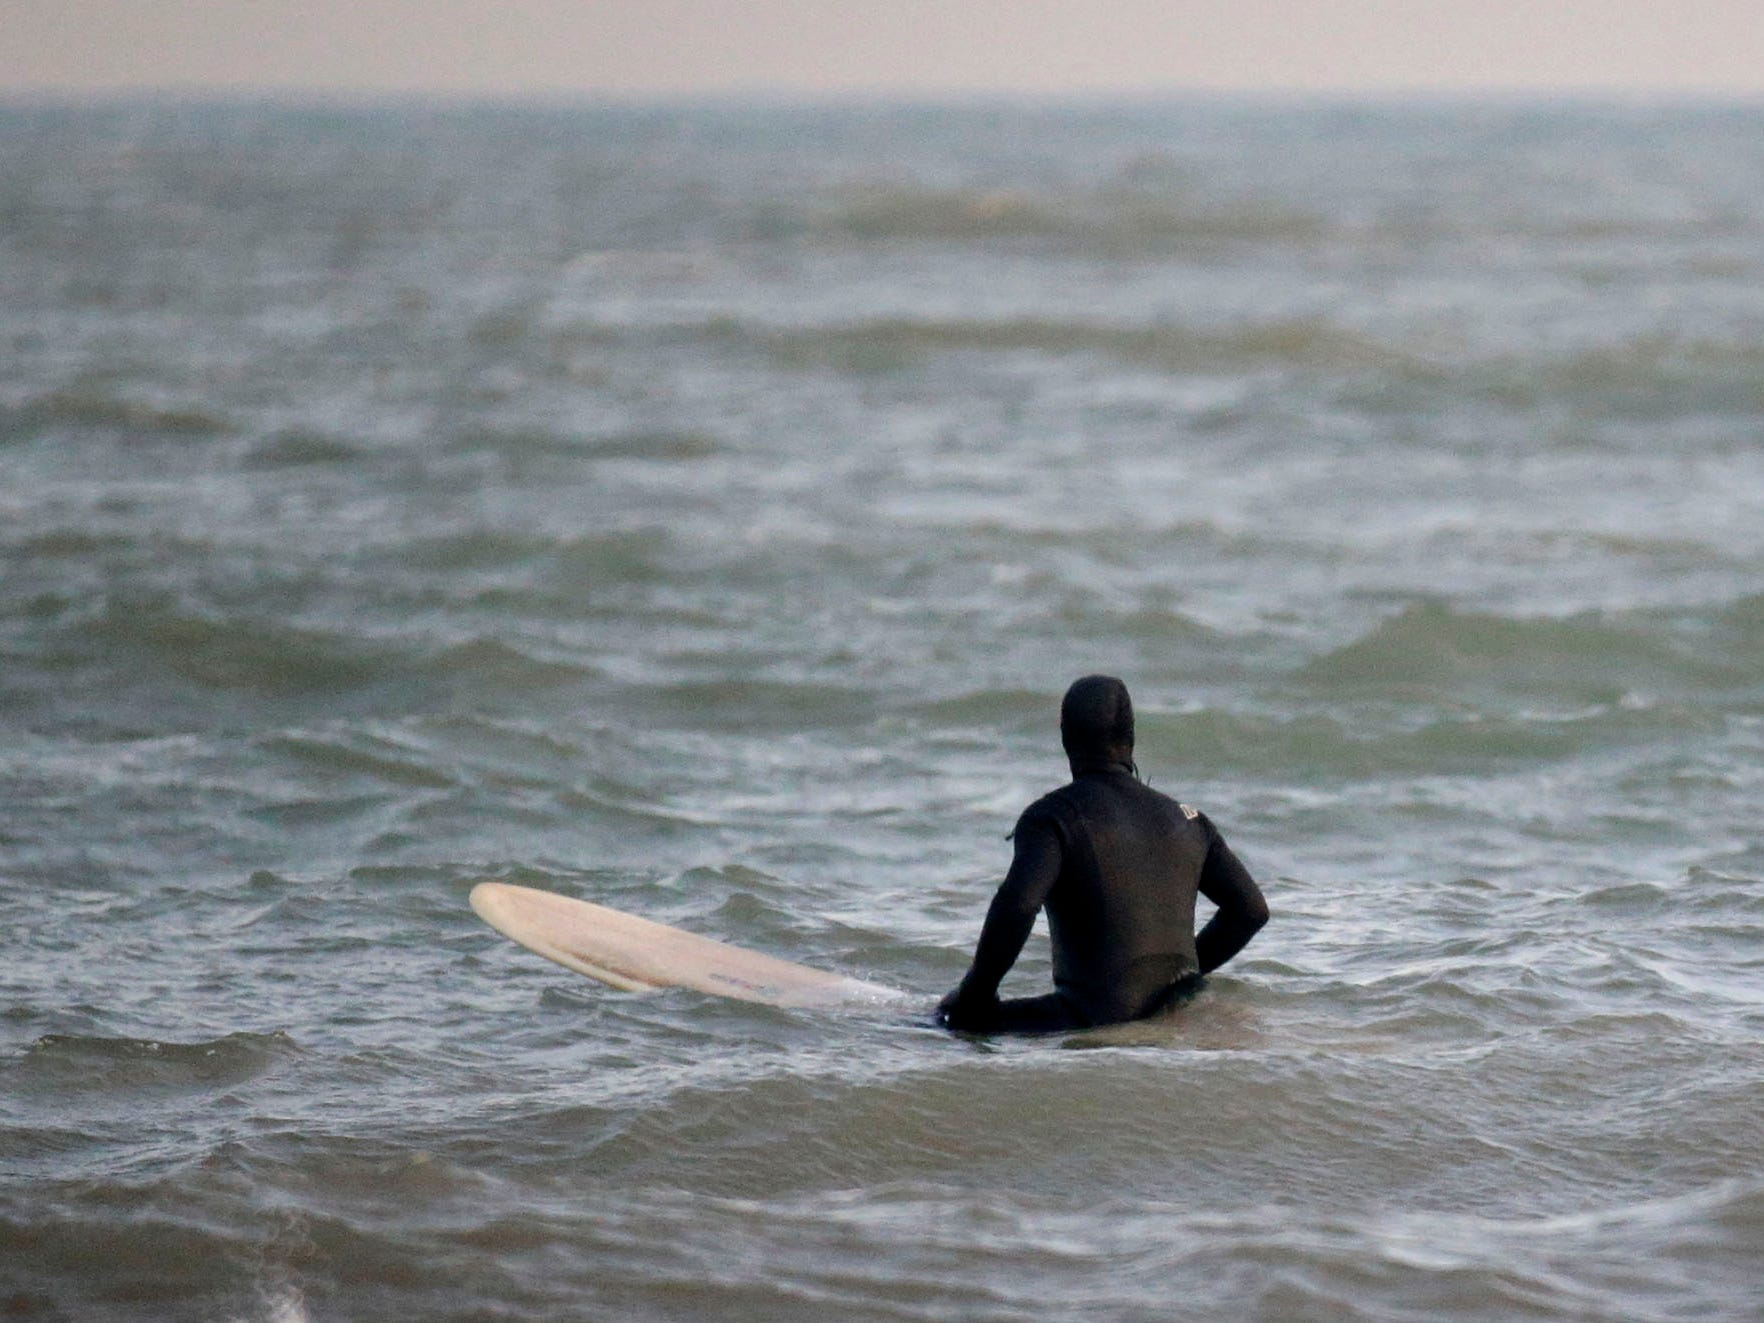 Brian David watches for a wave at the lakefront, Tuesday, December 18, 2108, in Sheboygan, Wis.